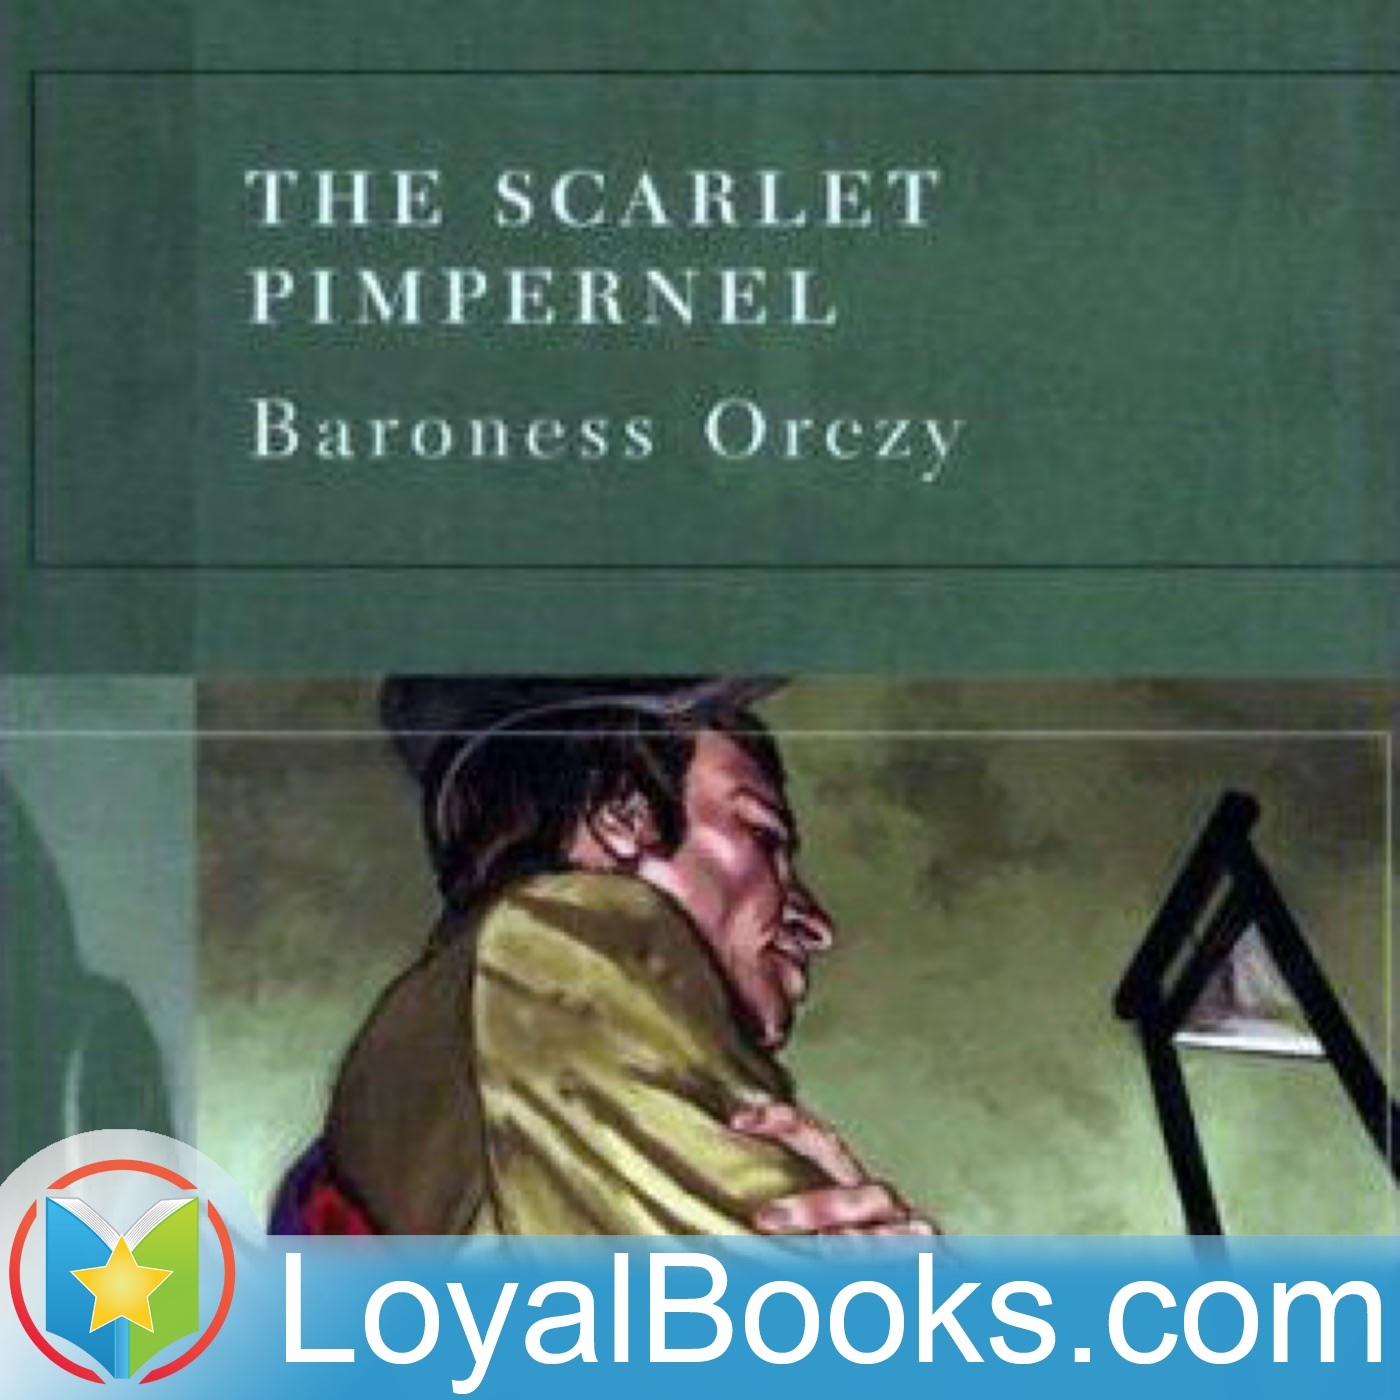 <![CDATA[The Scarlet Pimpernel by Emma Orczy]]>